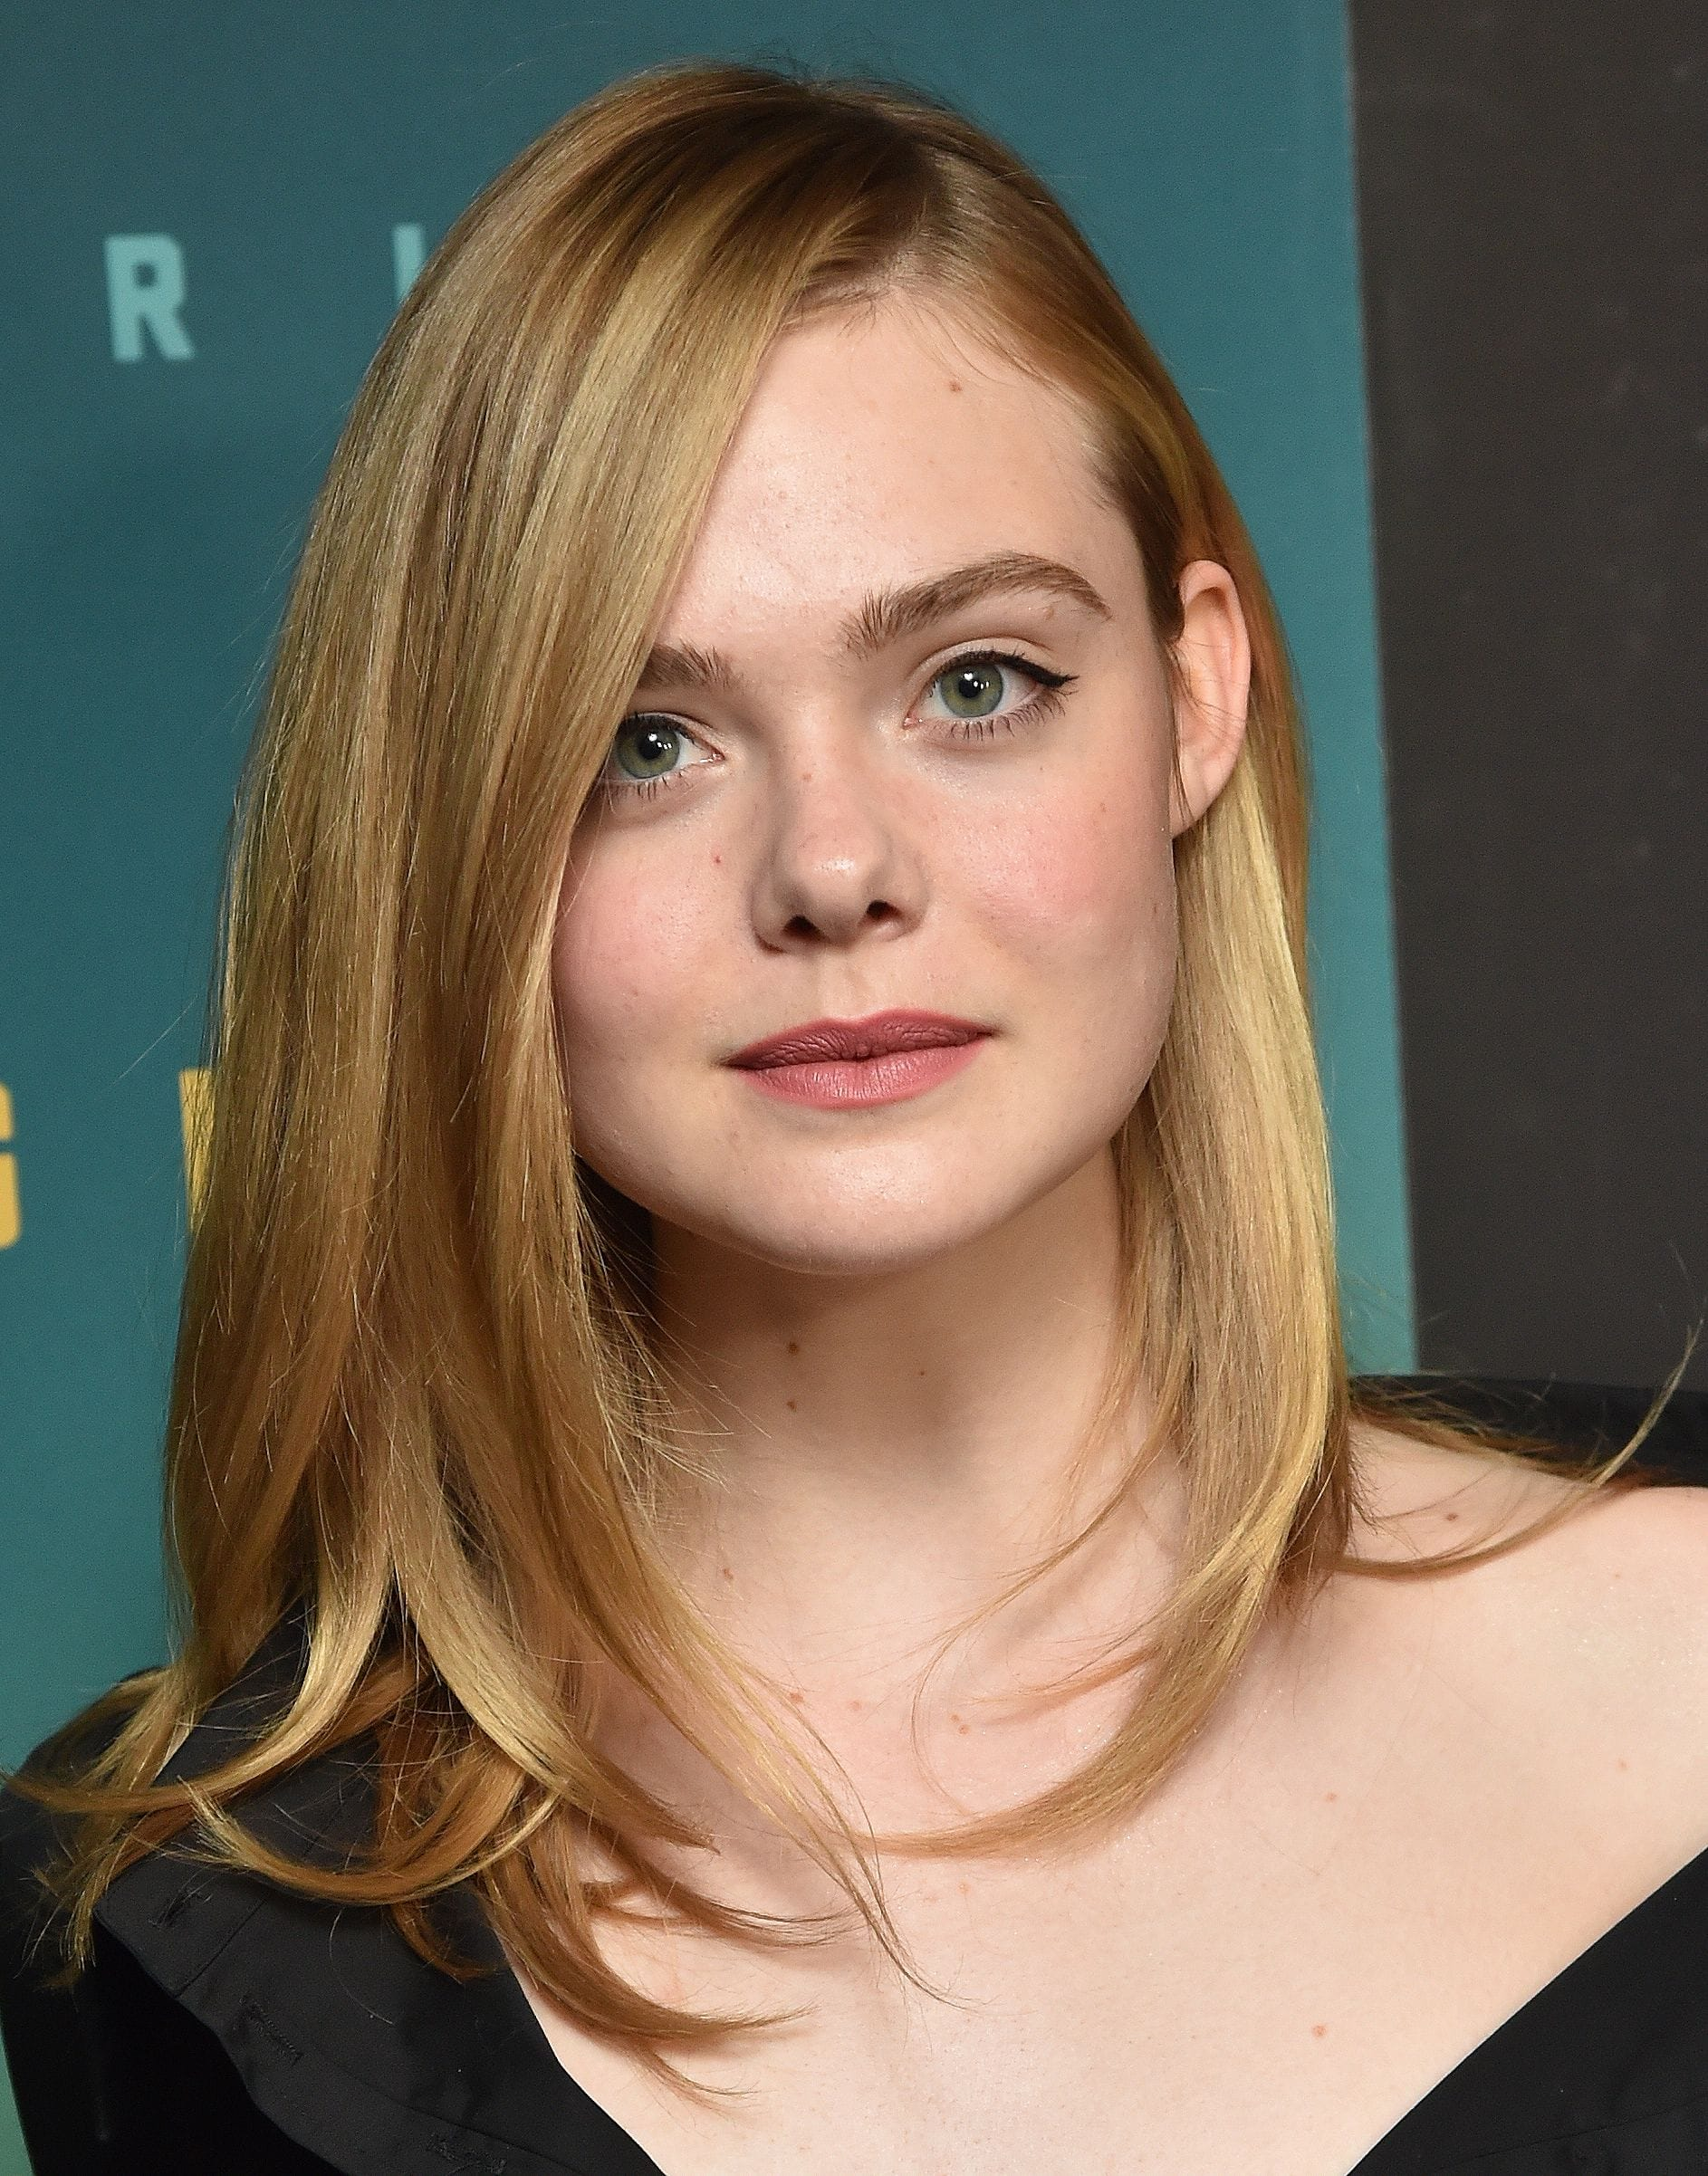 Red carpet hairstyles: Elle Fanning with straight blonde shoulder length hair parted down the side wearing a black dress.